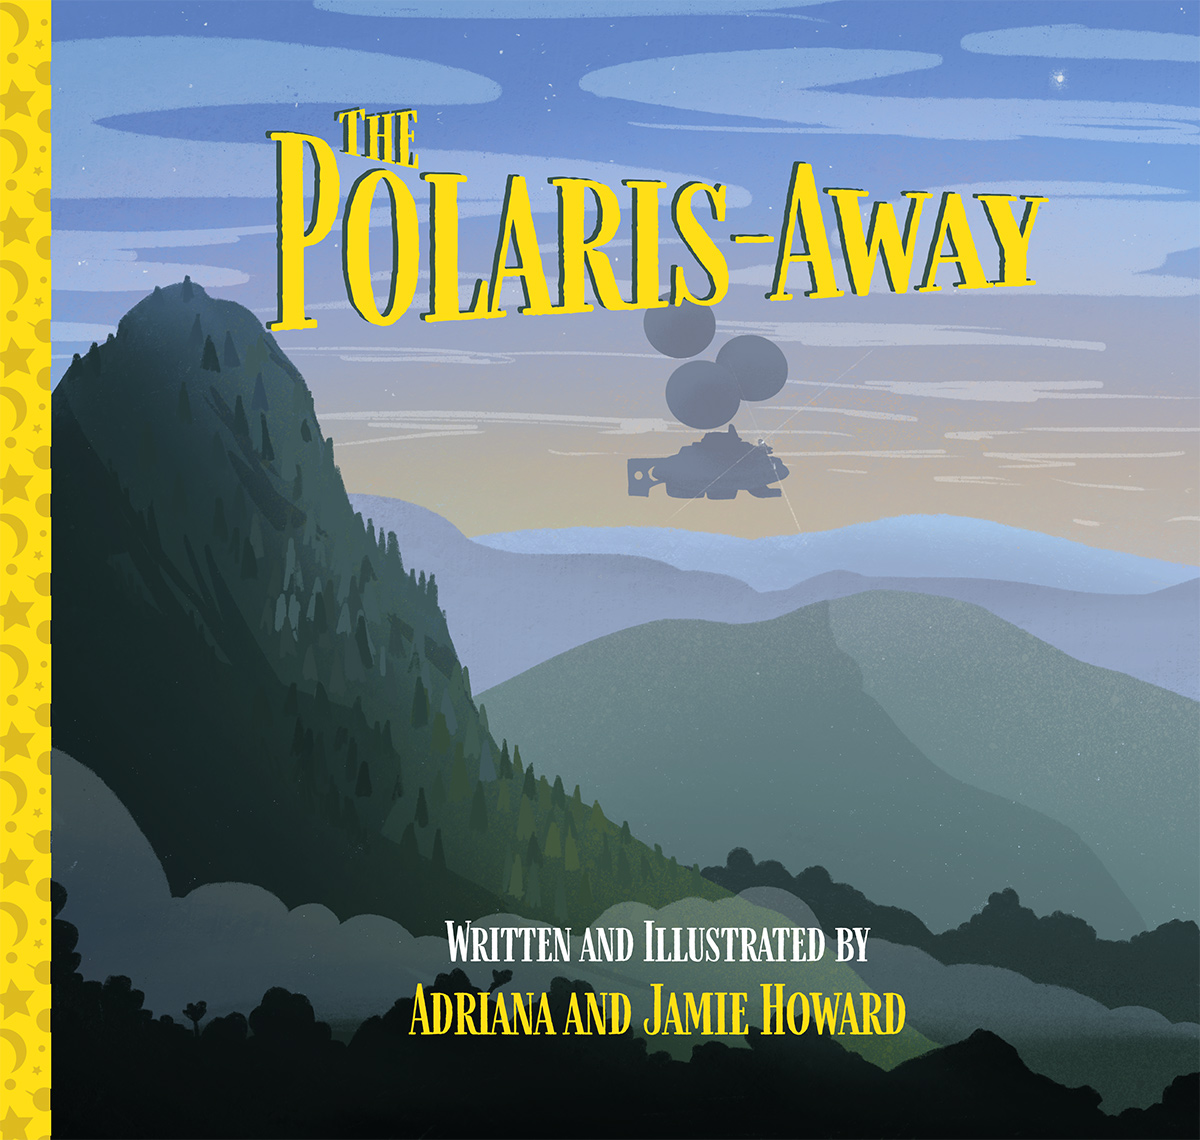 The Polaris-Away book cover